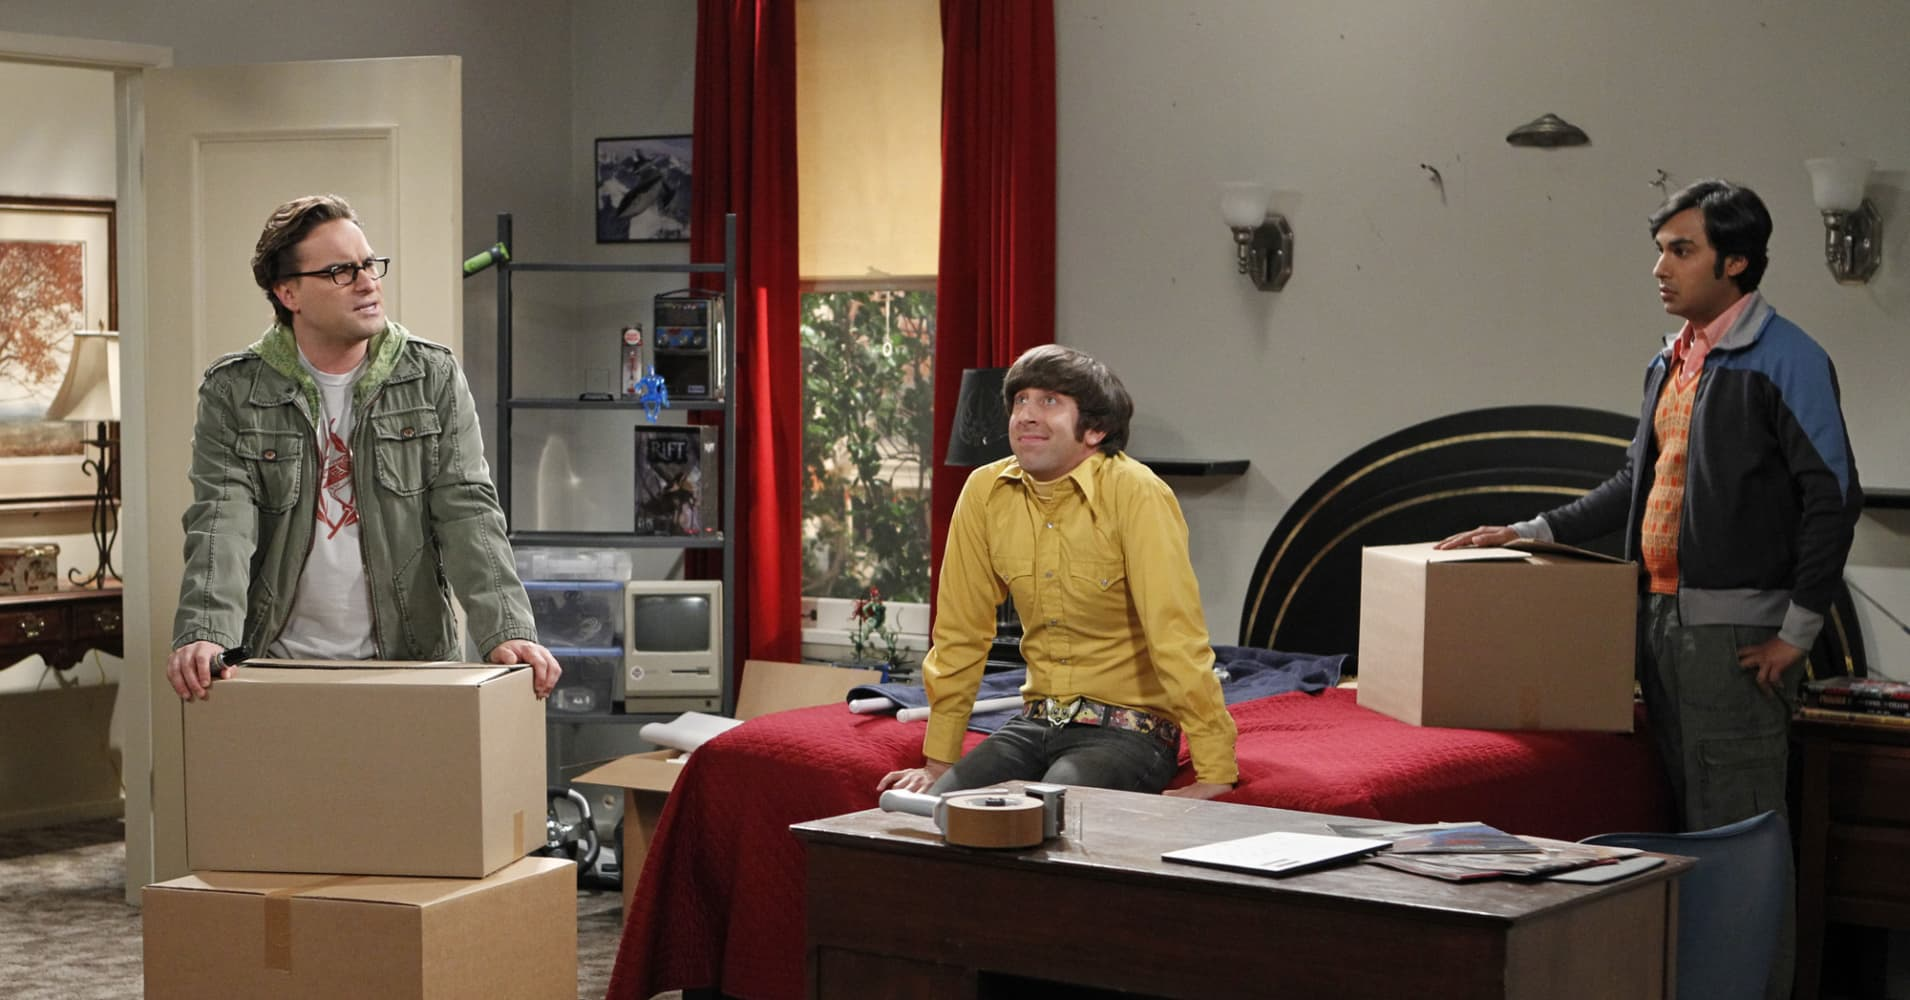 Howard Wolowitz (center) struggles with moving out of his mother's house, on The Big Bang Theory.